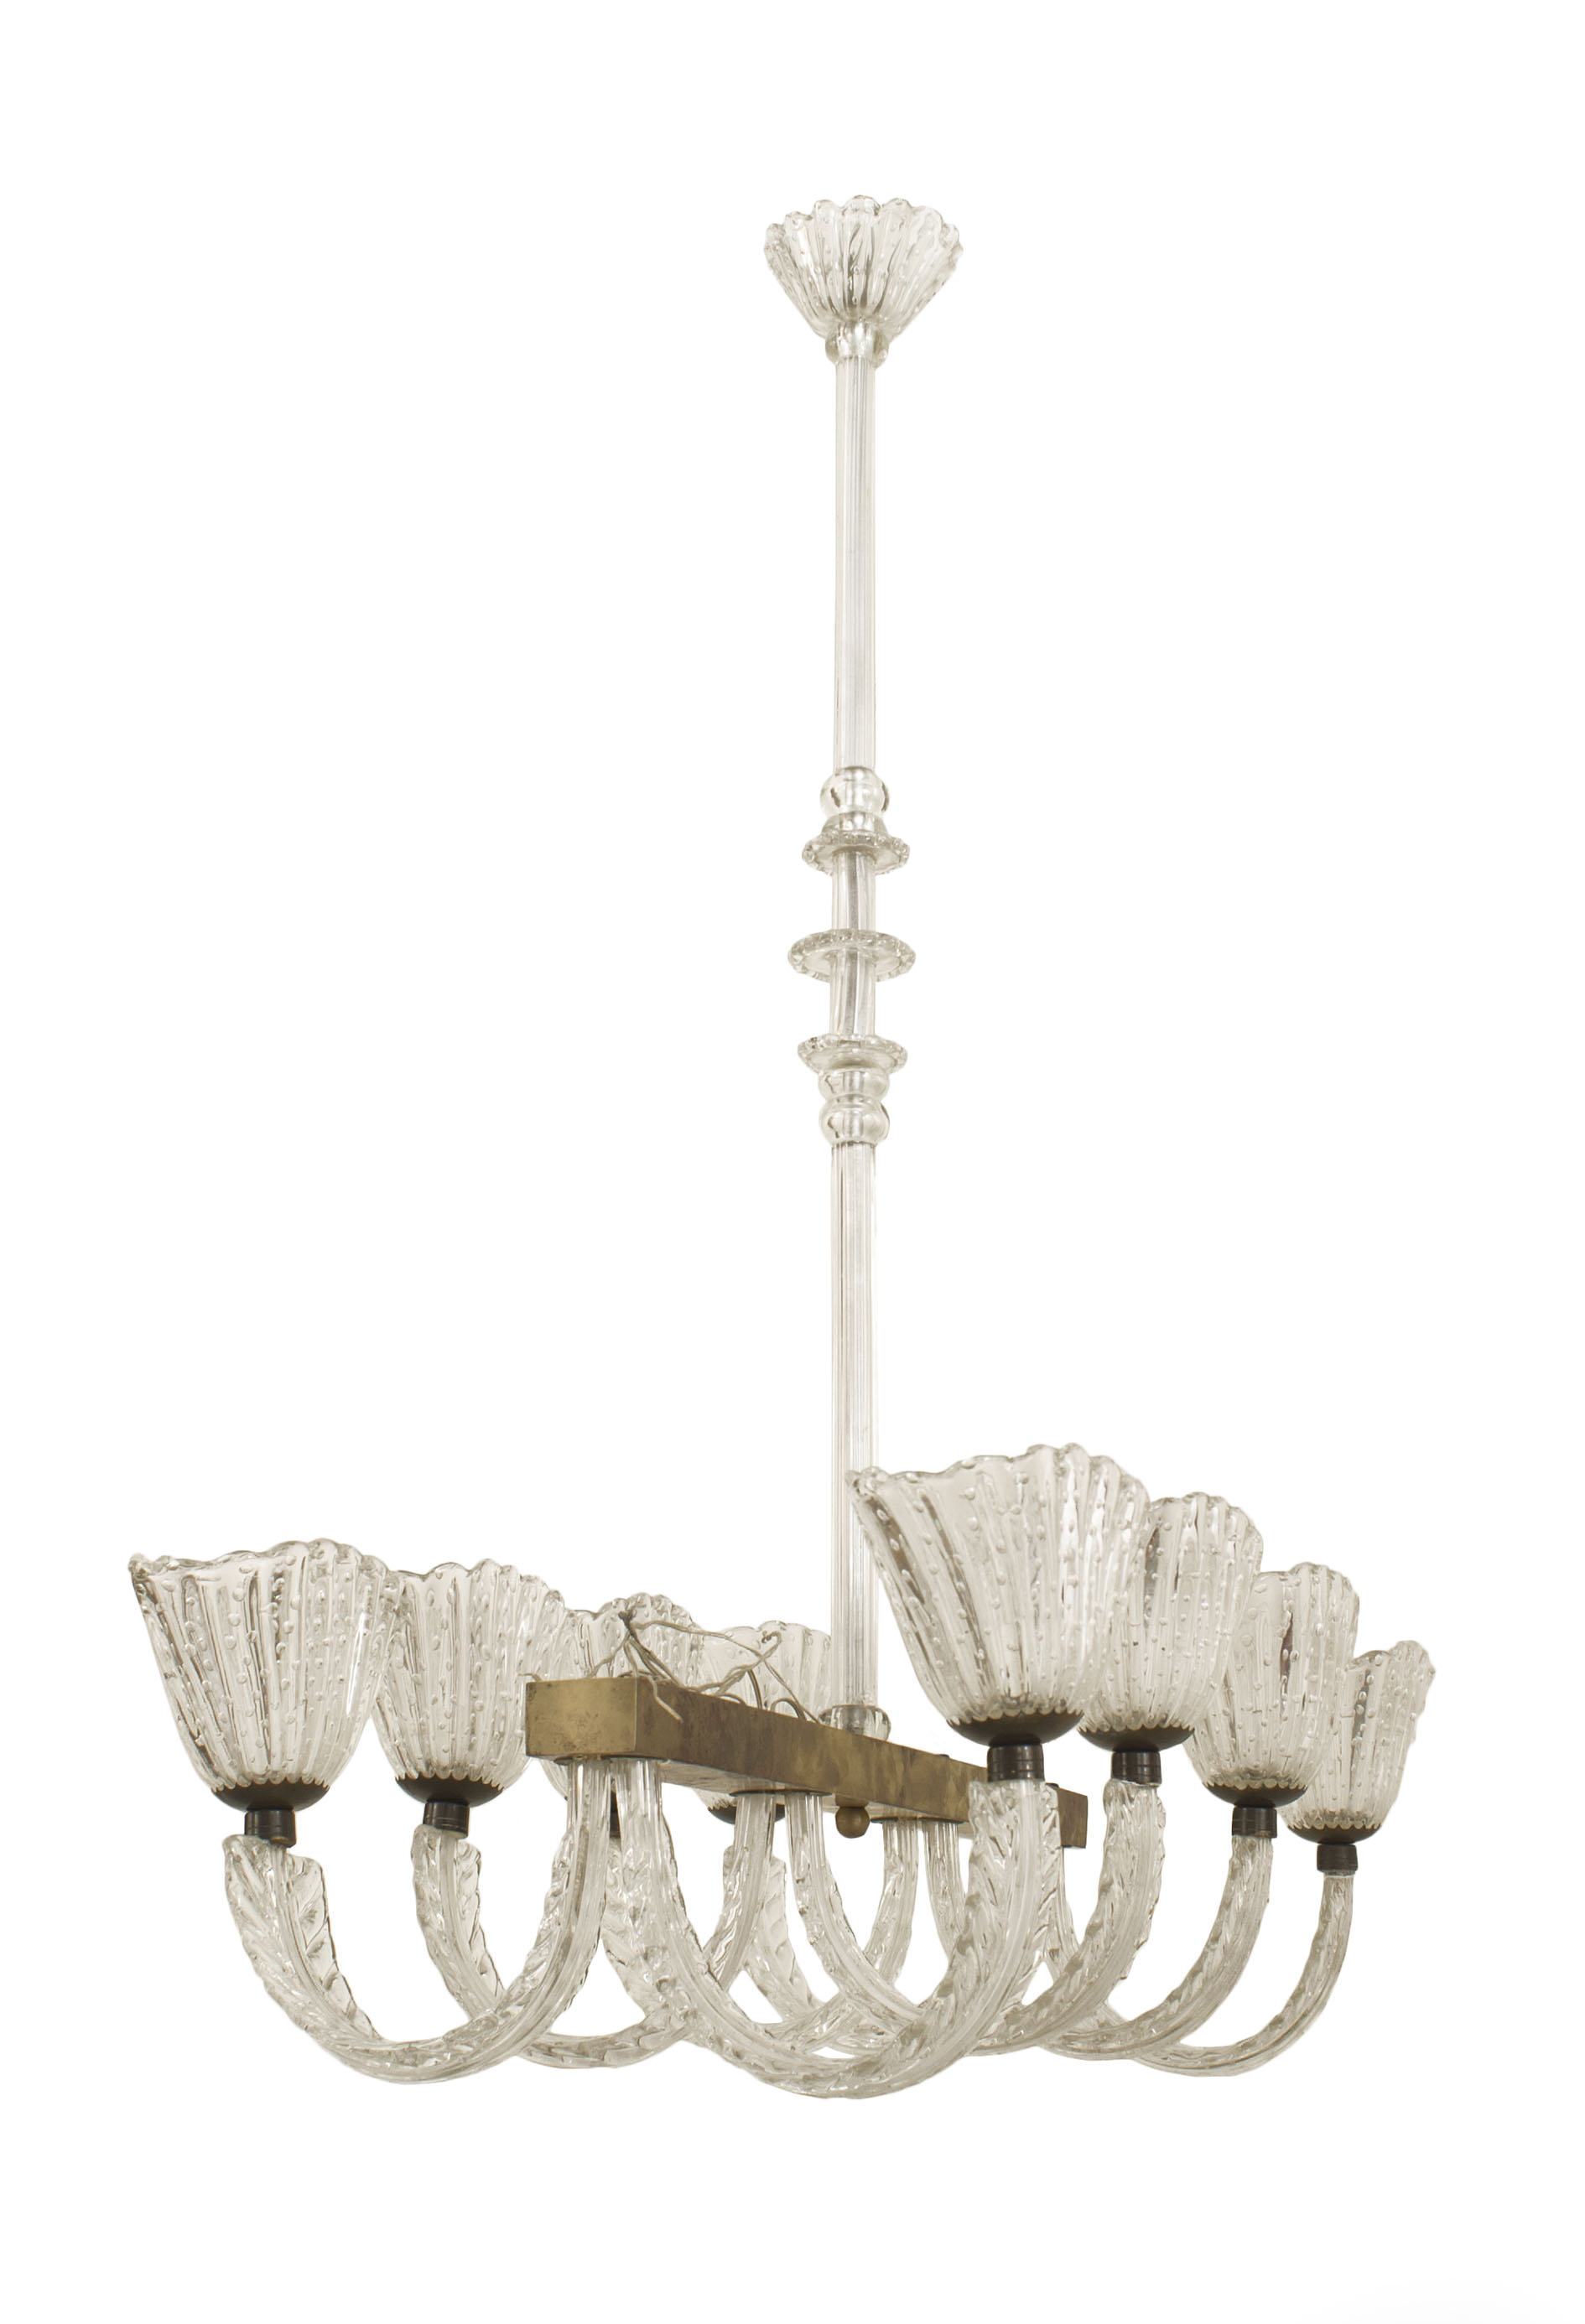 Italian 1940s chandelier with horizontal metal frame having 4 pair internal bubble design oval shades with a tiered centerpost by barovier et toso jkg1730 mid century italian lighting chandelier glass aloadofball Image collections